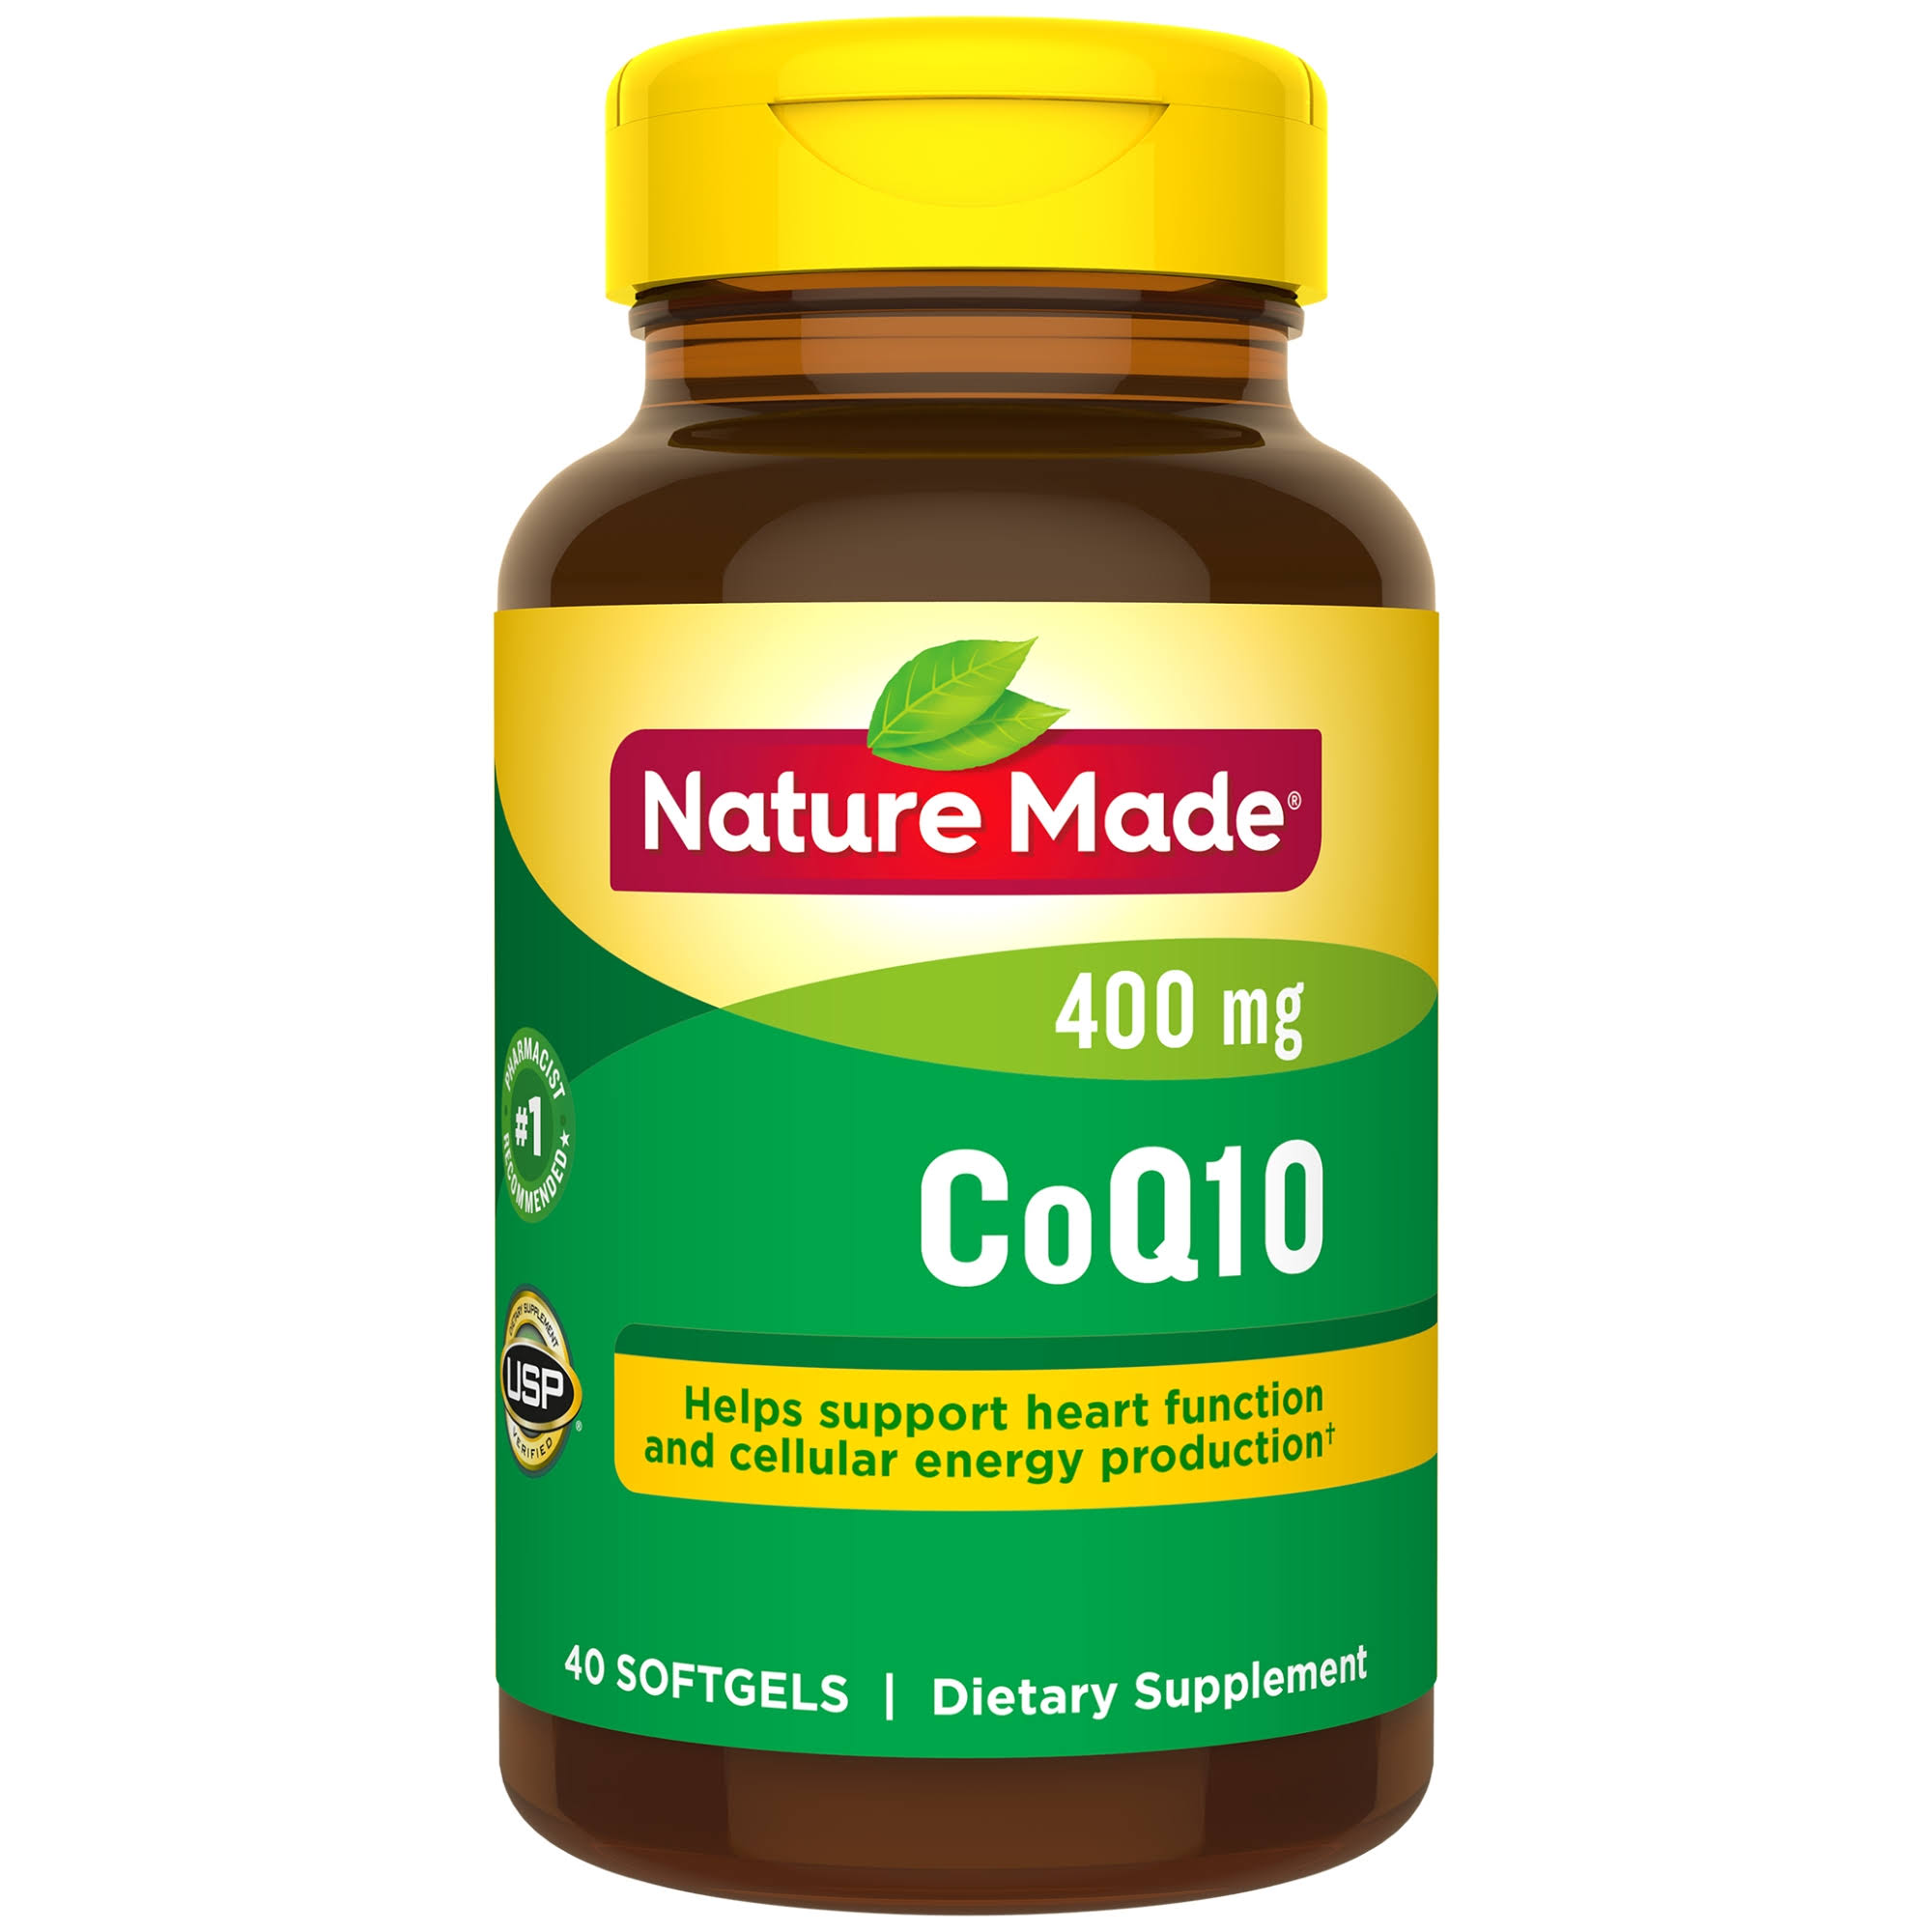 Nature Made CoQ10 Softgels Dietary Supplement - 400mg, 40ct